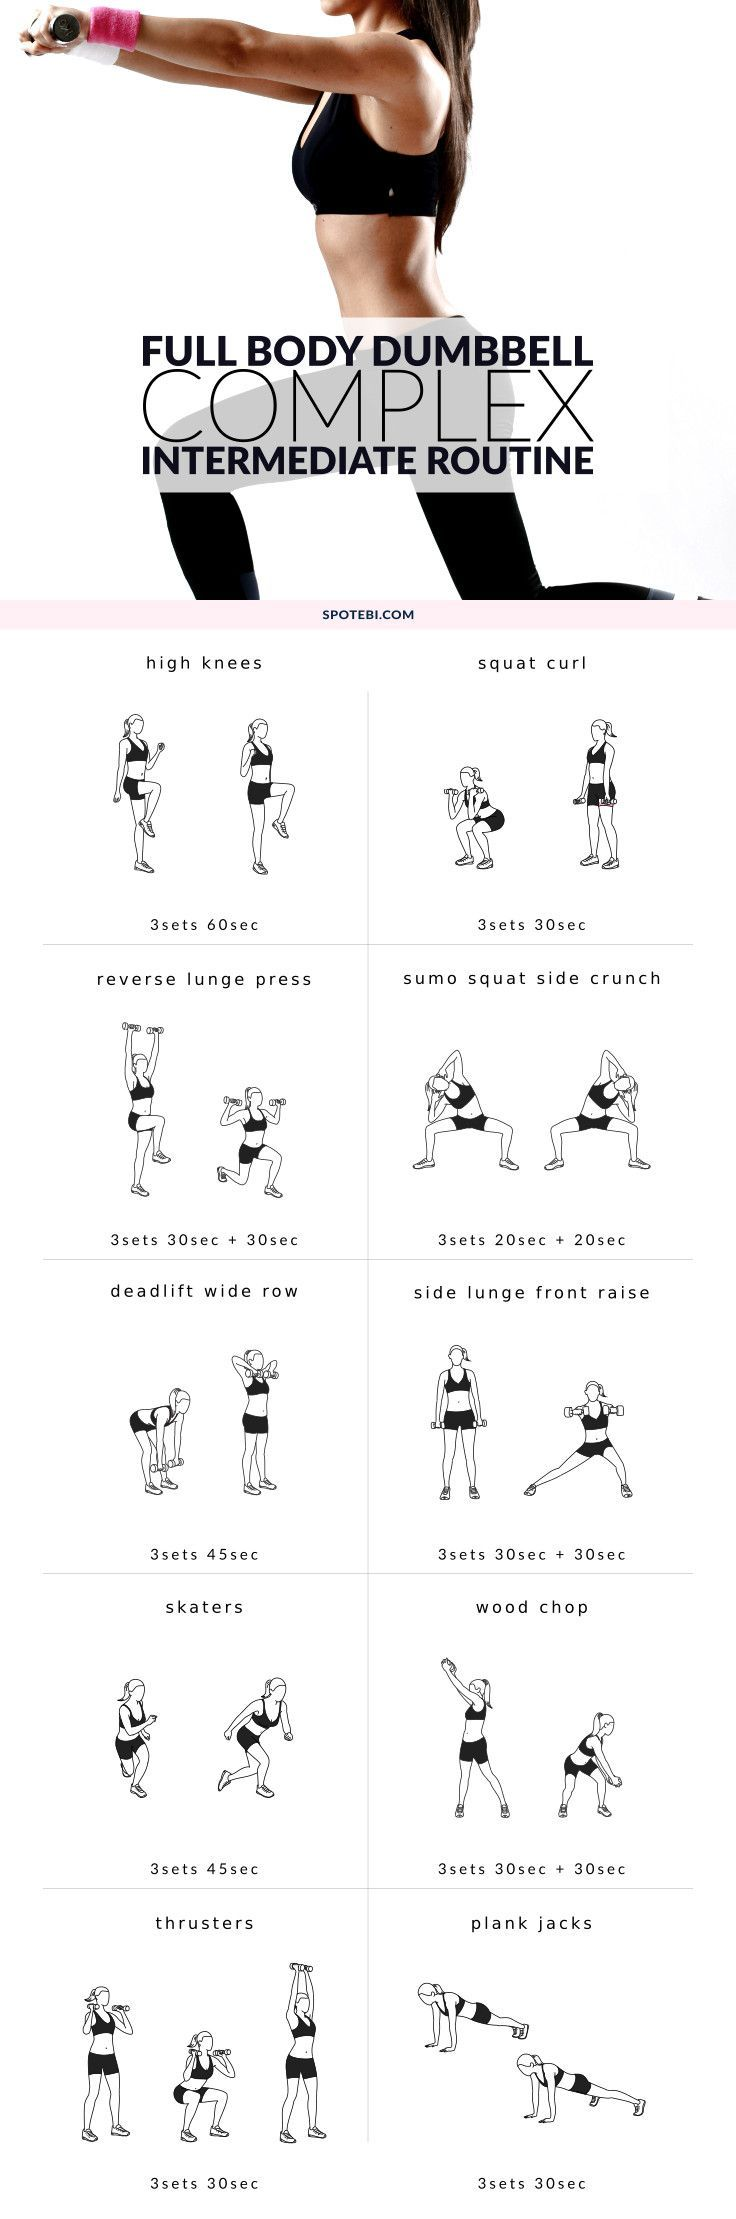 Maximize weight loss and jump start your metabolism with this full body intermediate dumbbell complex. Complexes are simply a series of full body exercises done back to back using weights, that can help you burn fat and speed up your metabolism during exercise and for hours afterward. http://www.spotebi.com/workout-routines/full-body-dumbbell-complex-women/